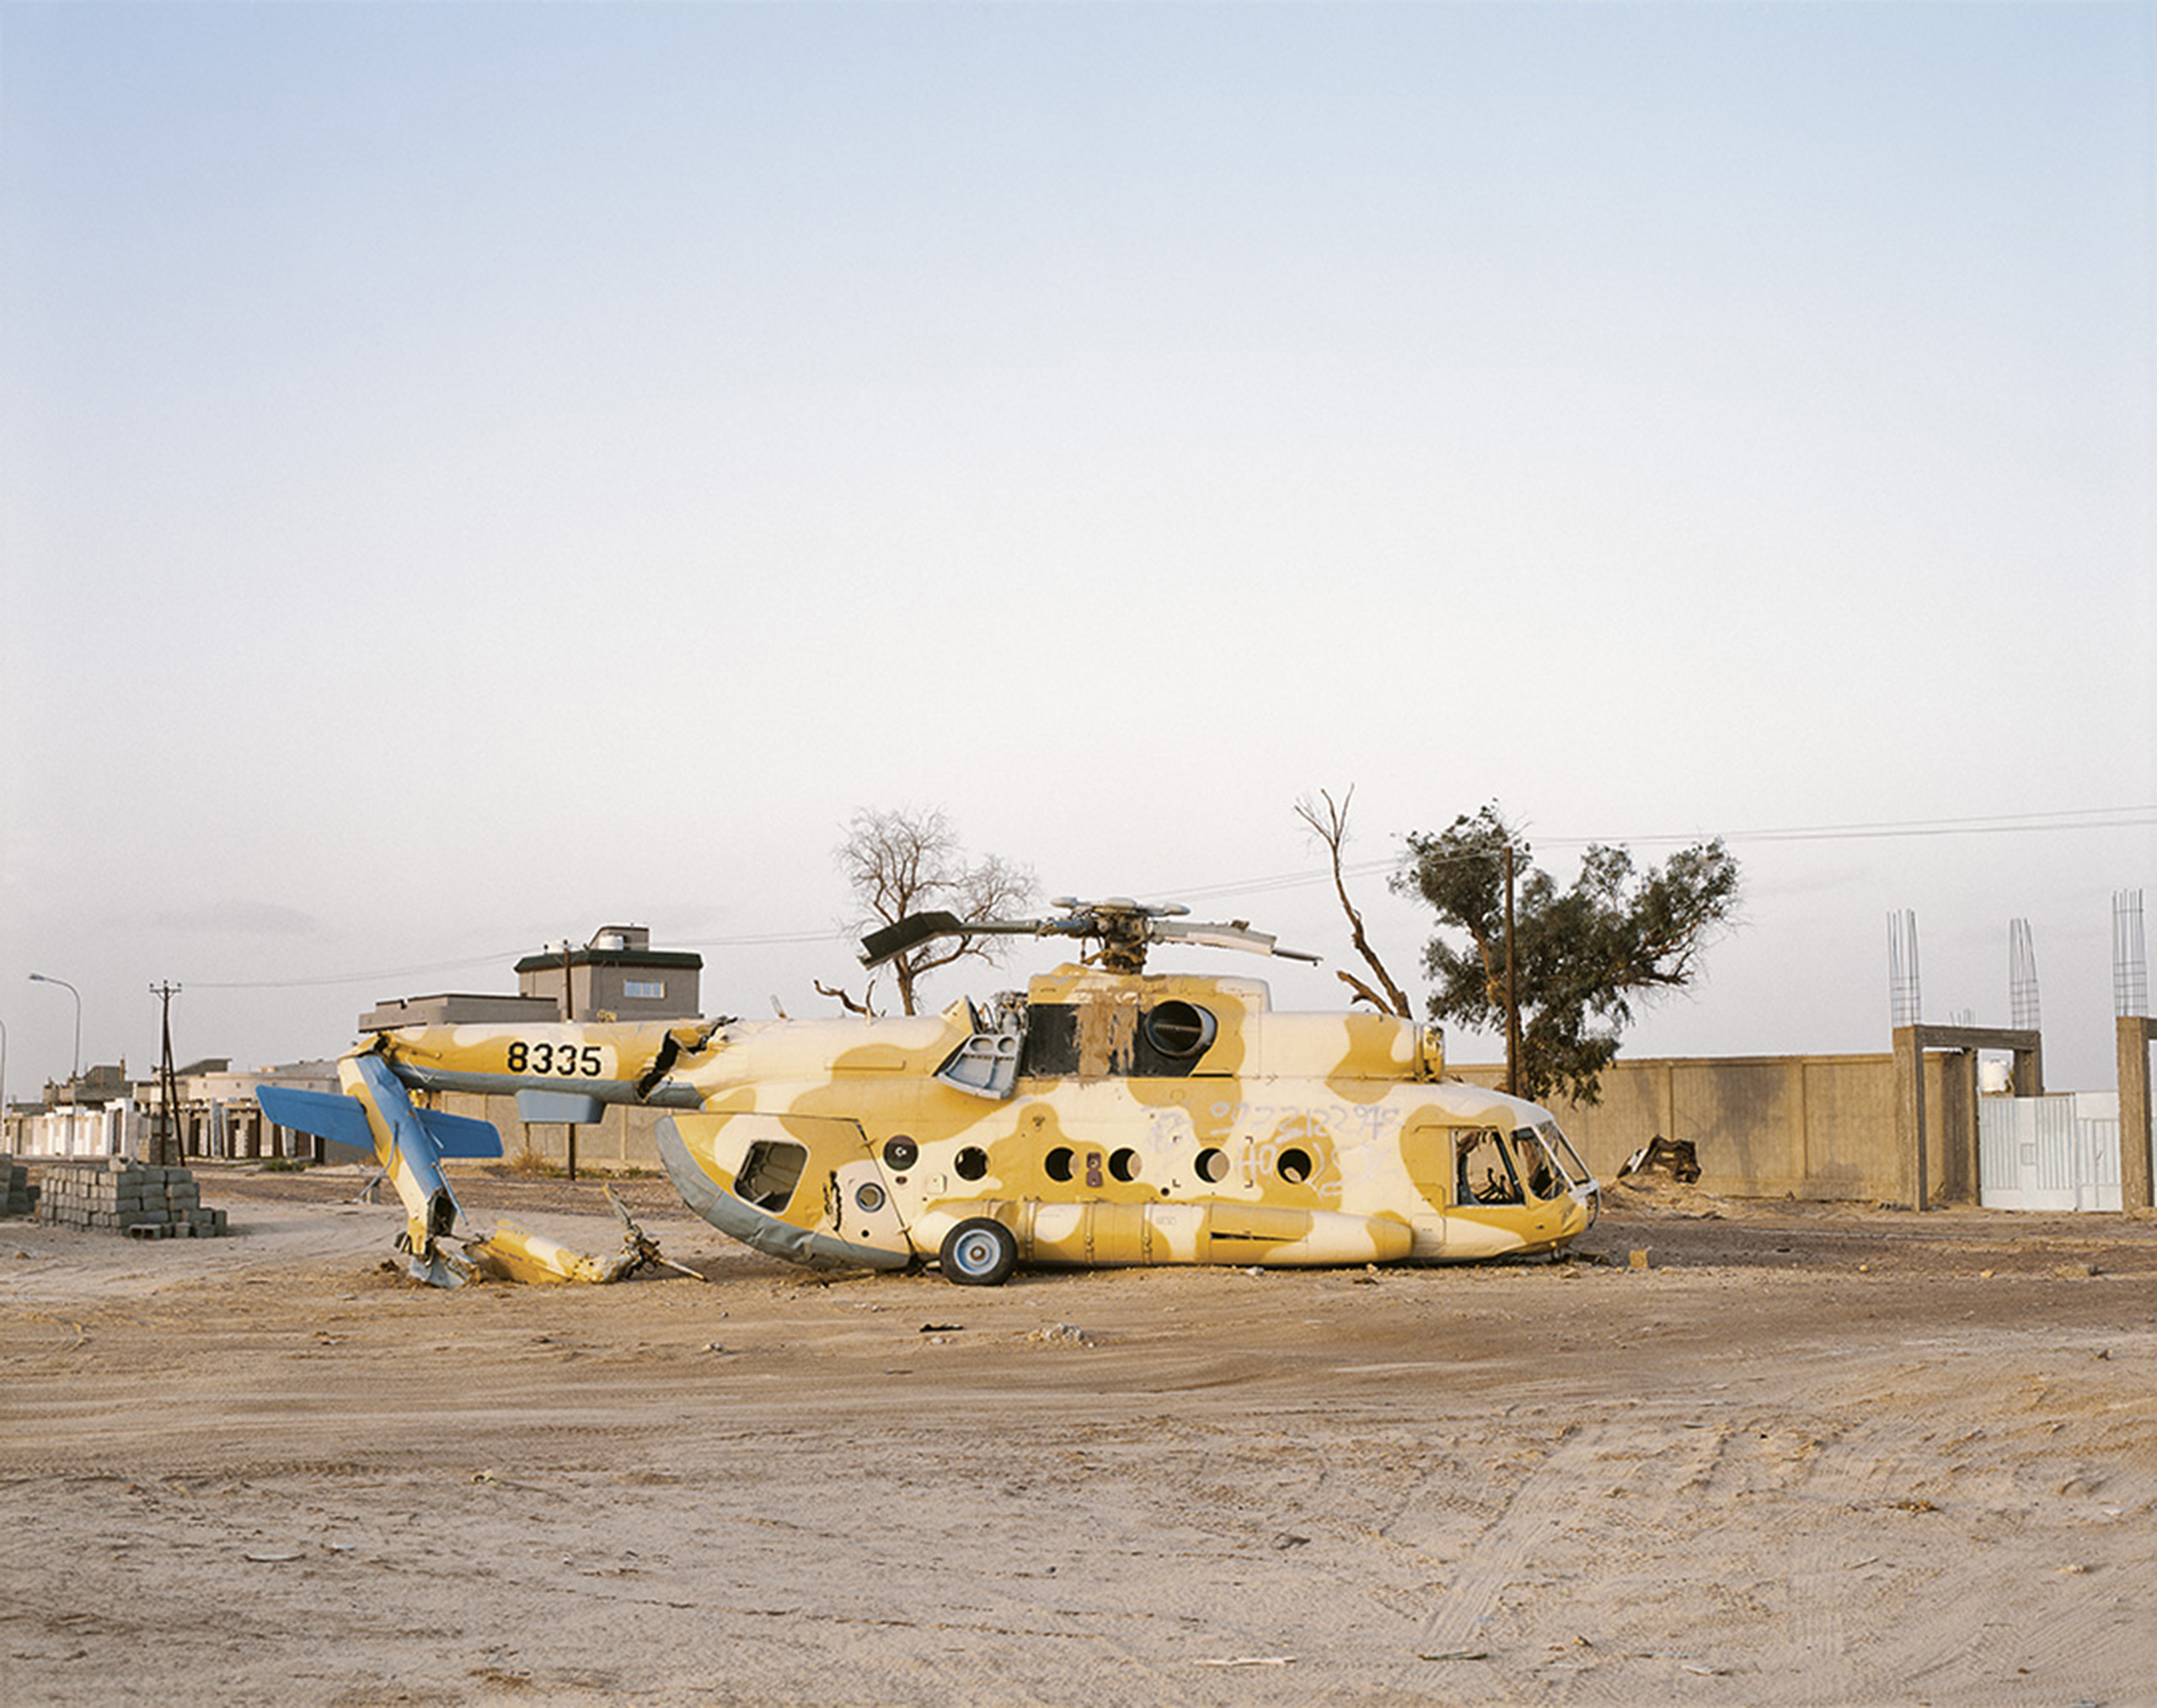 The remains of a Libyan National Army MI8 helicopter that crash-landed from overloading in 2012, during the reconciliation tour operated in Southern Libya by the Tripoli authorities. Murzuk, Southern Libya, March 2015.